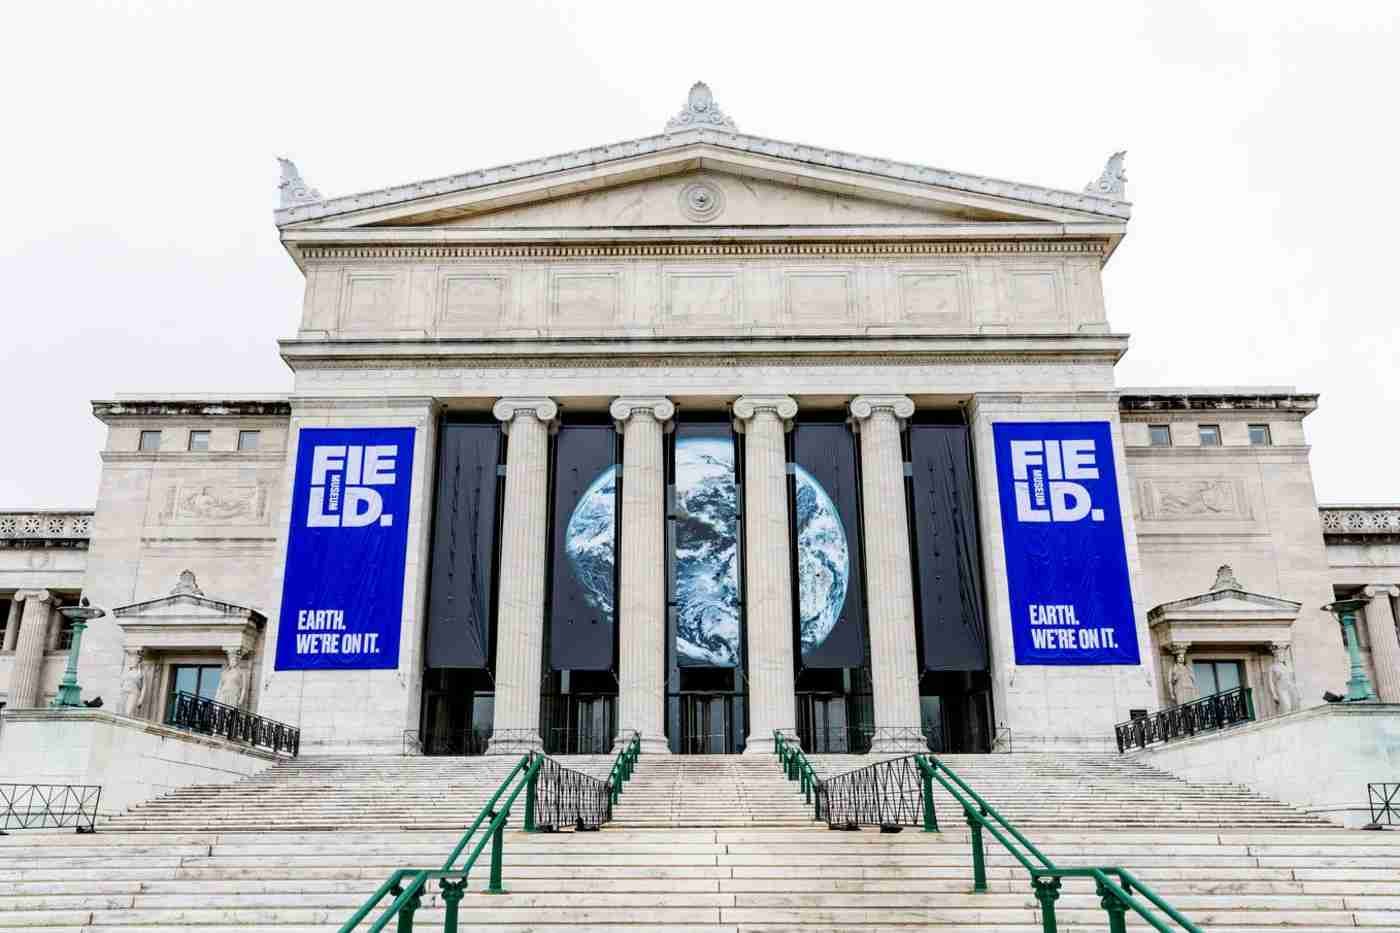 (Photo couresty of Field Museum)